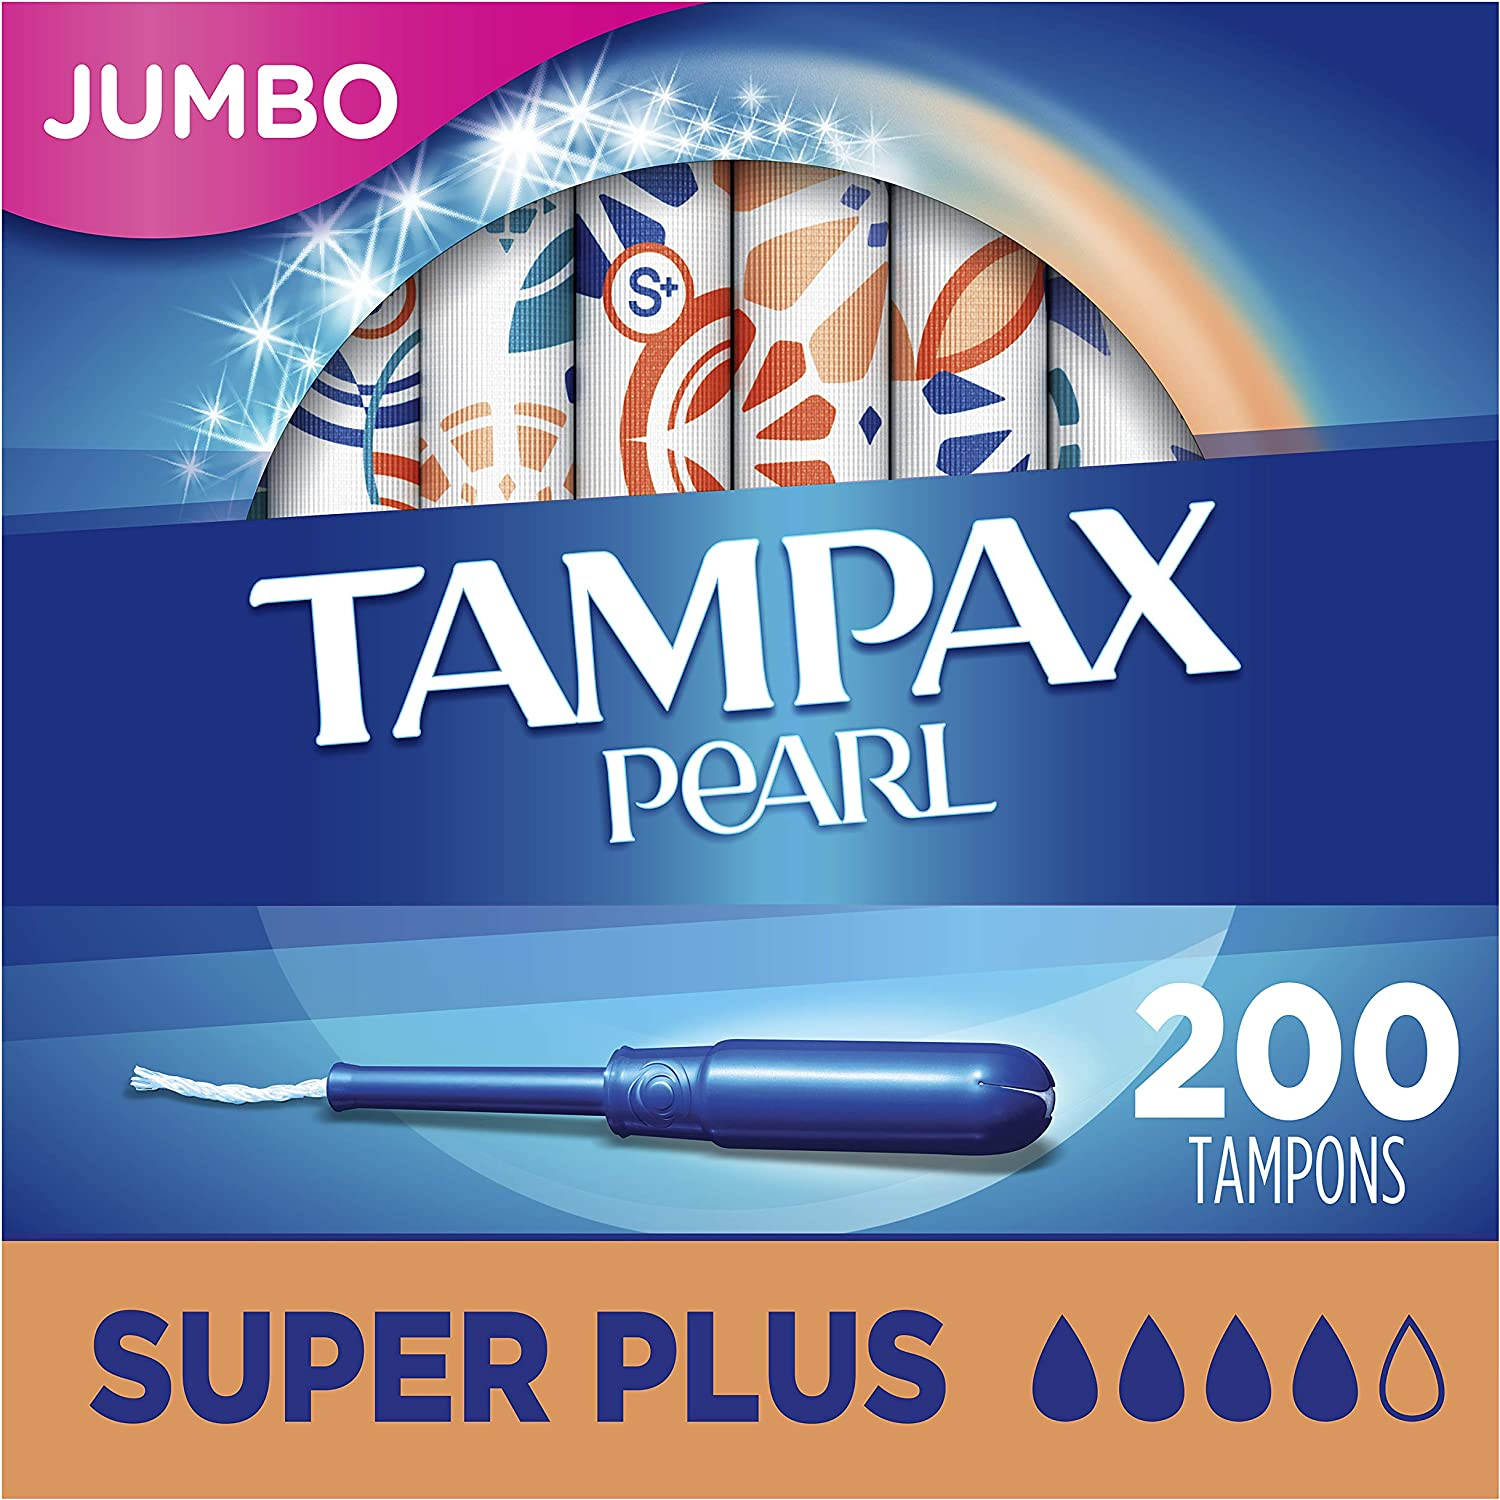 18 Count Tampax Pearl Tampons with Plastic Applicator Unscented Super Plus Absorbency